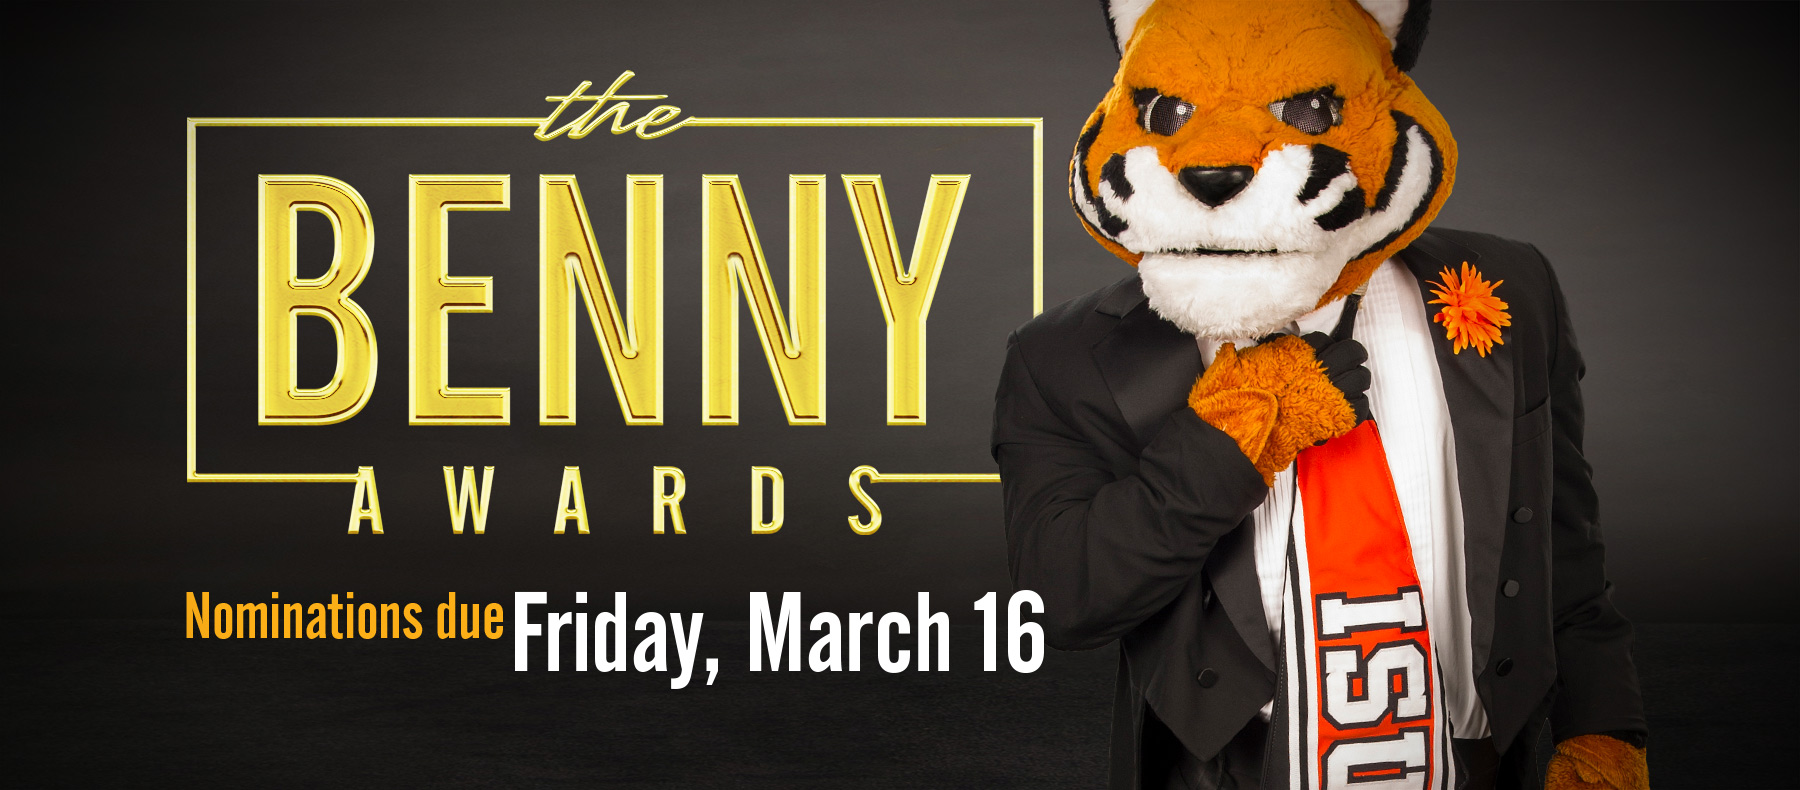 The Benny Awards Nominations due Friday, March 16